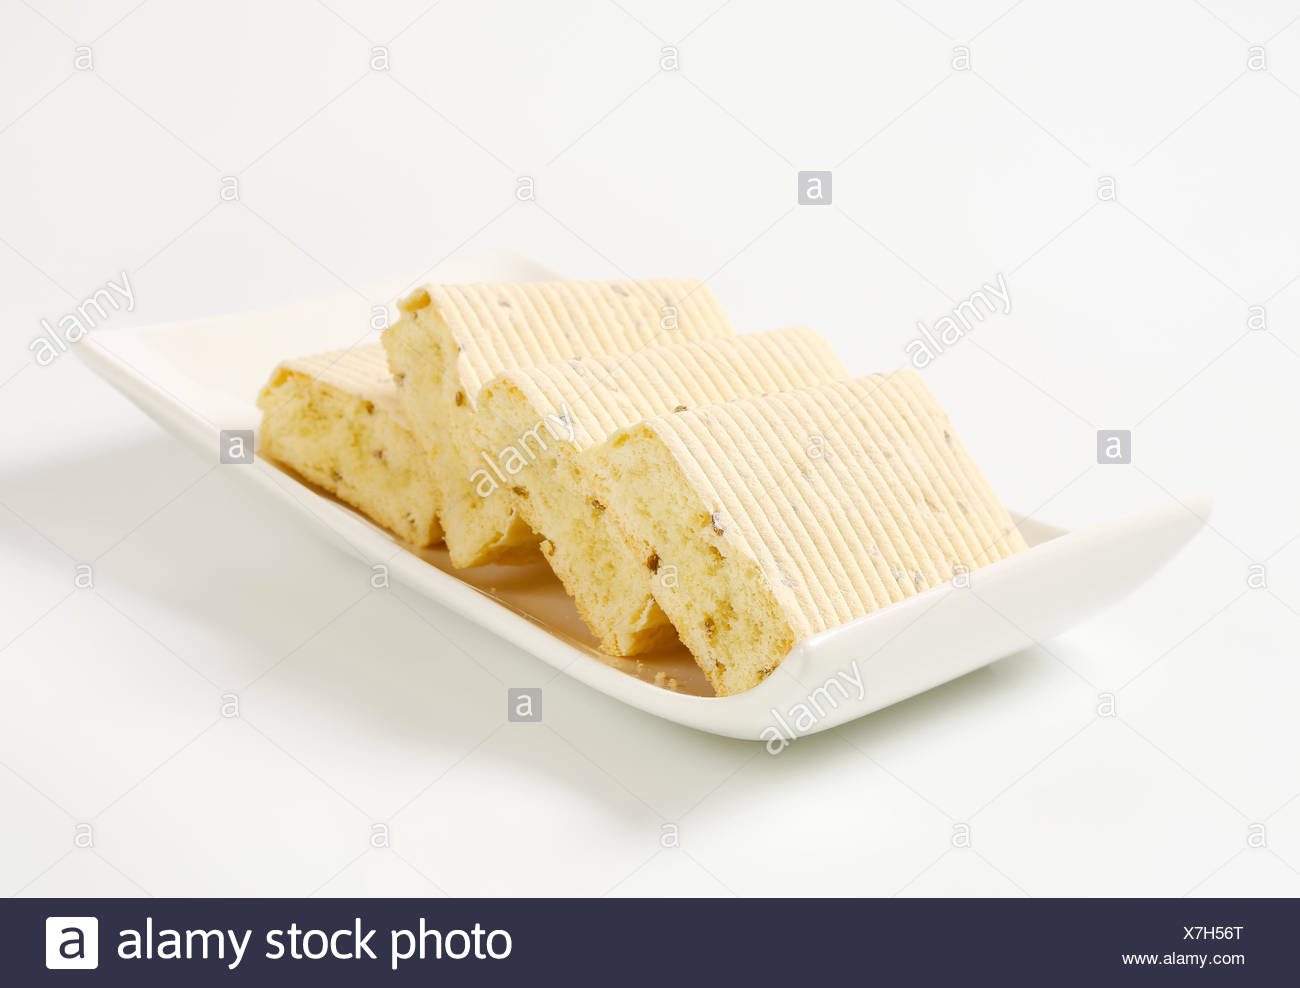 Anise Biscotti Stock Photos & Anise Biscotti Stock Images - Alamy